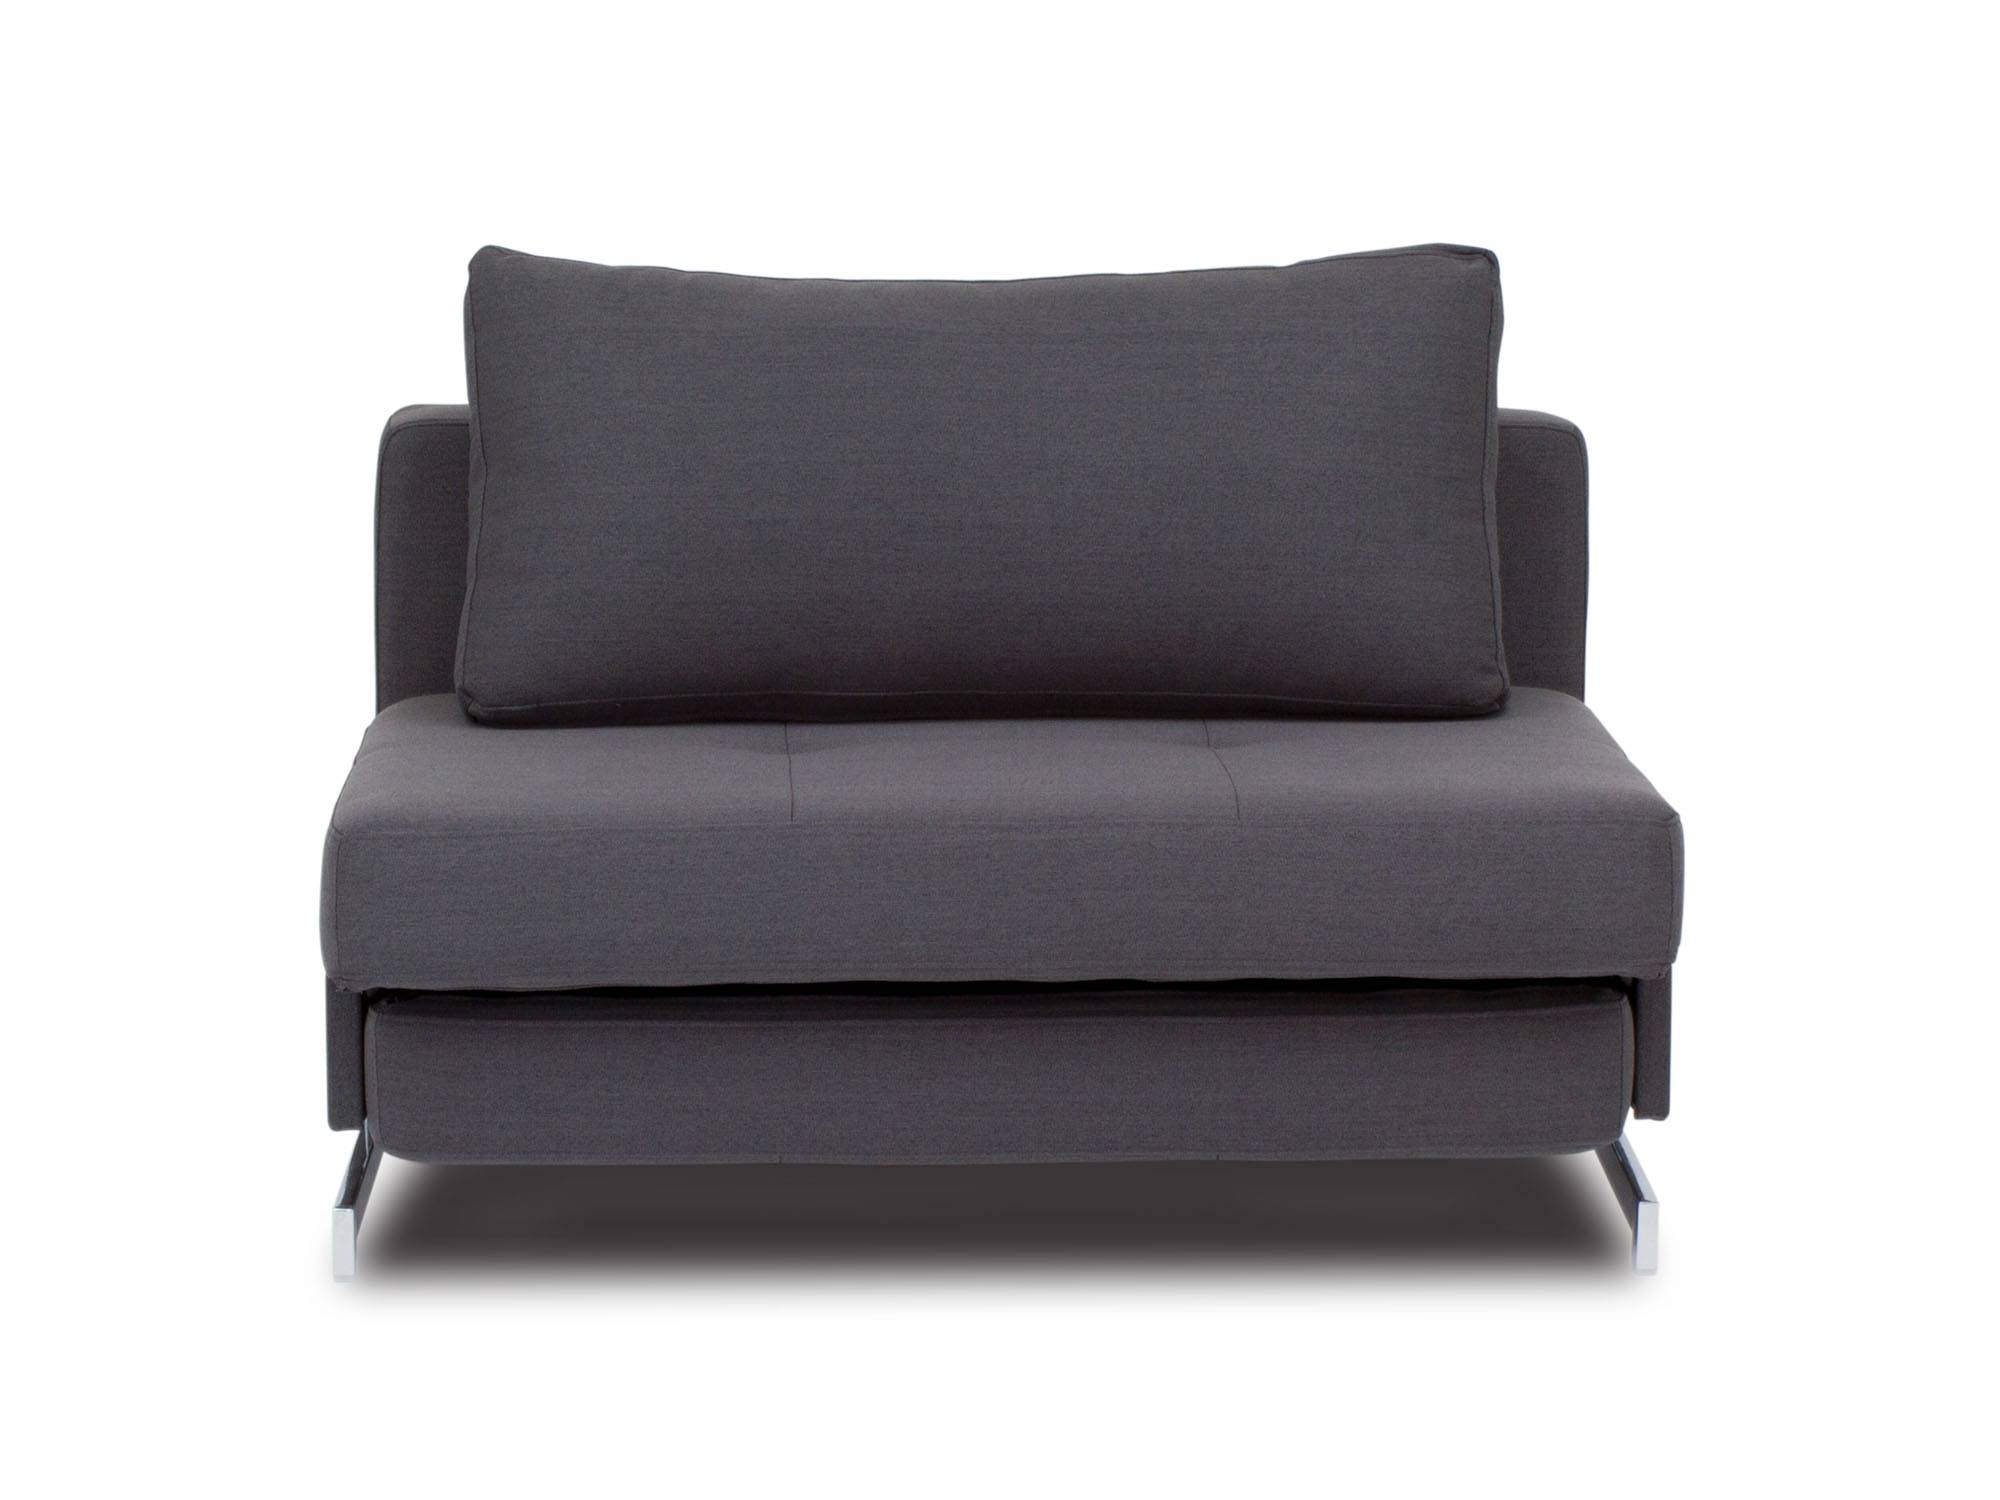 Sofas Center : Sofaingle Beds Doubleeater Habitathocking Image within Ikea Single Sofa Beds (Image 26 of 30)